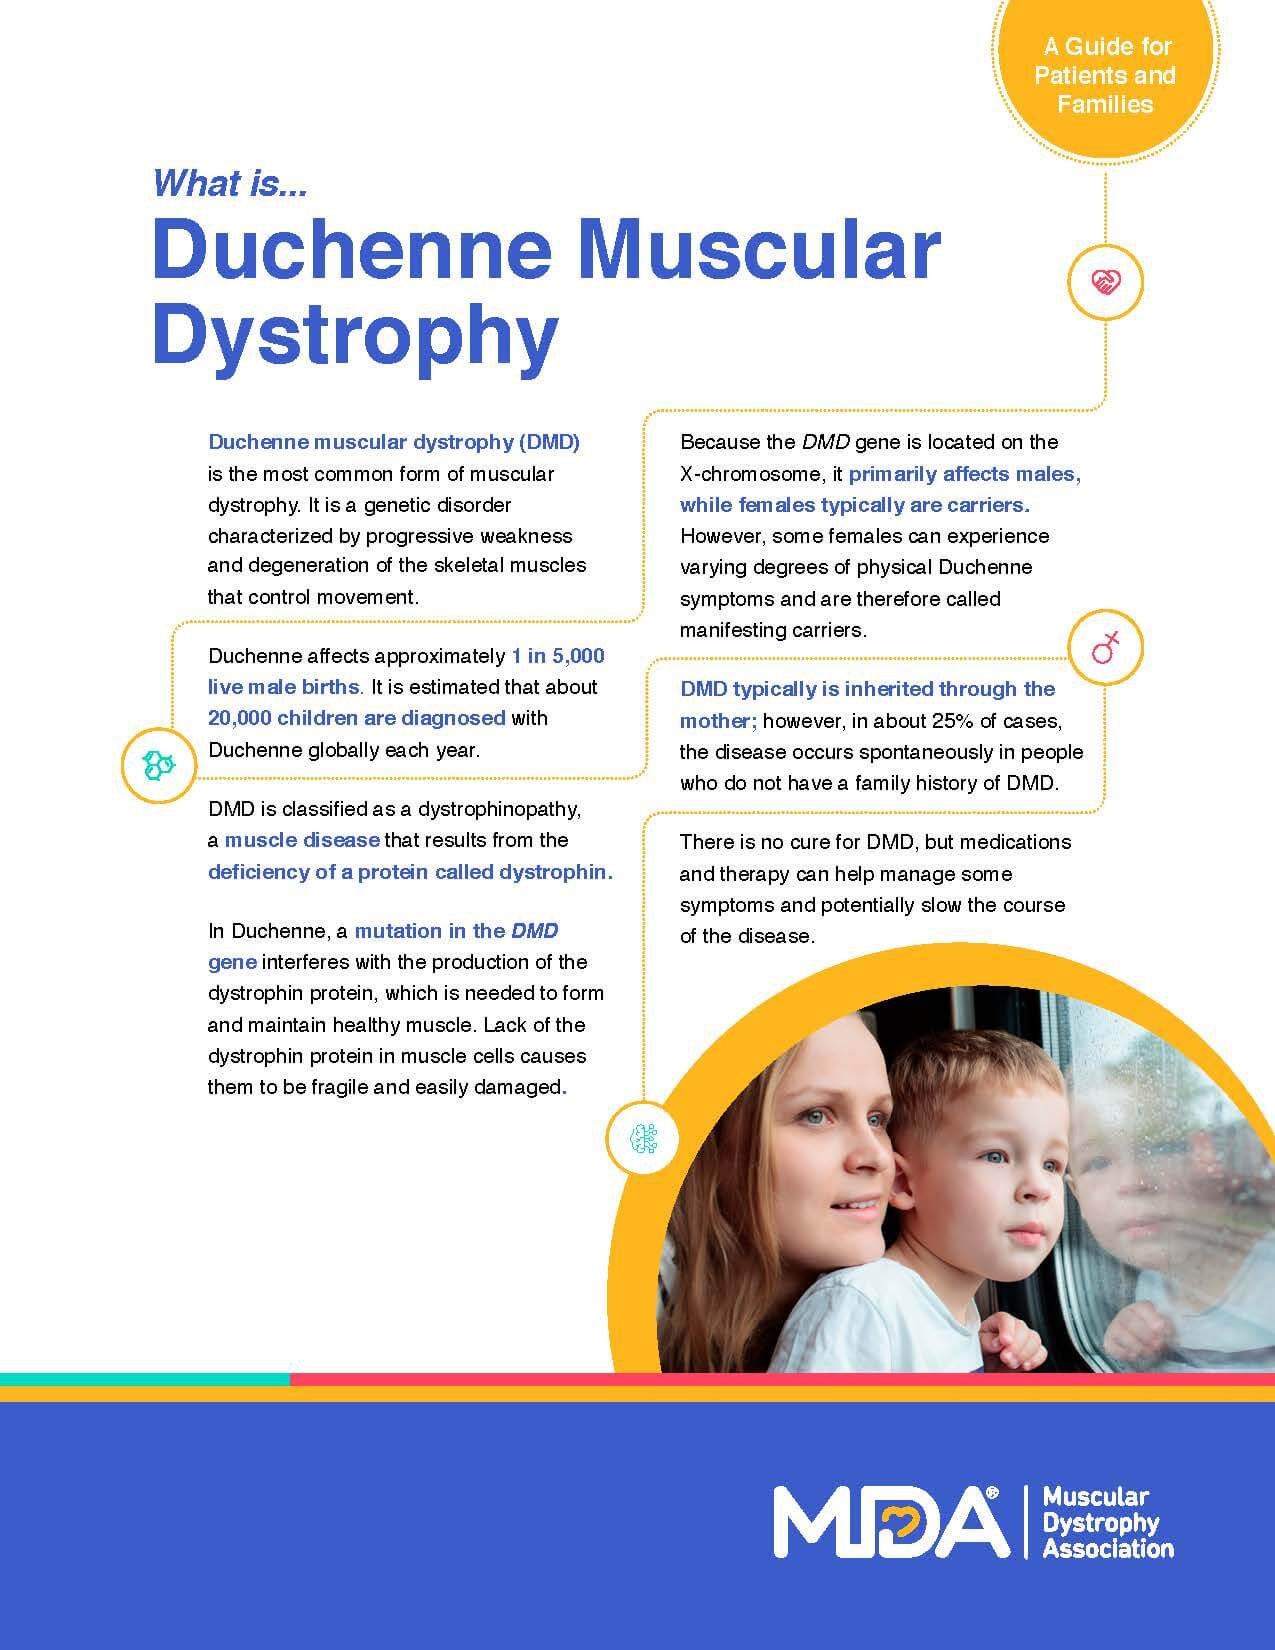 Duchenne Muscular Dystrophy Death Statistics Mda Releases New Dmd Fact Sheet During Duchenne Muscular